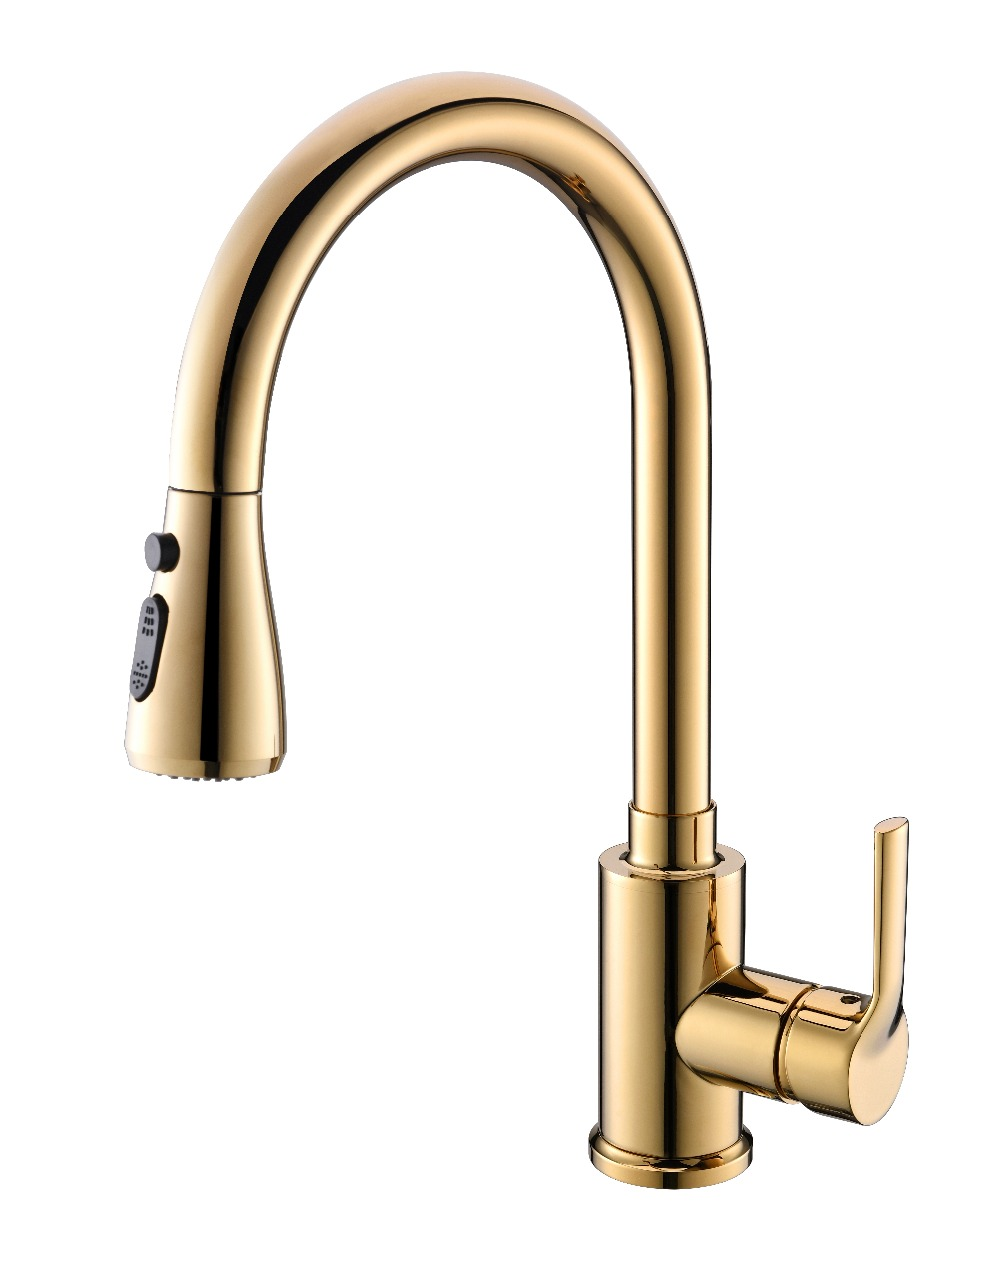 Free Ship Pull Ou Sprayer Kitchen Bar Sink Faucet Mixer Tap Single Hole / Handle Deck Mounted Gold Pvd Color